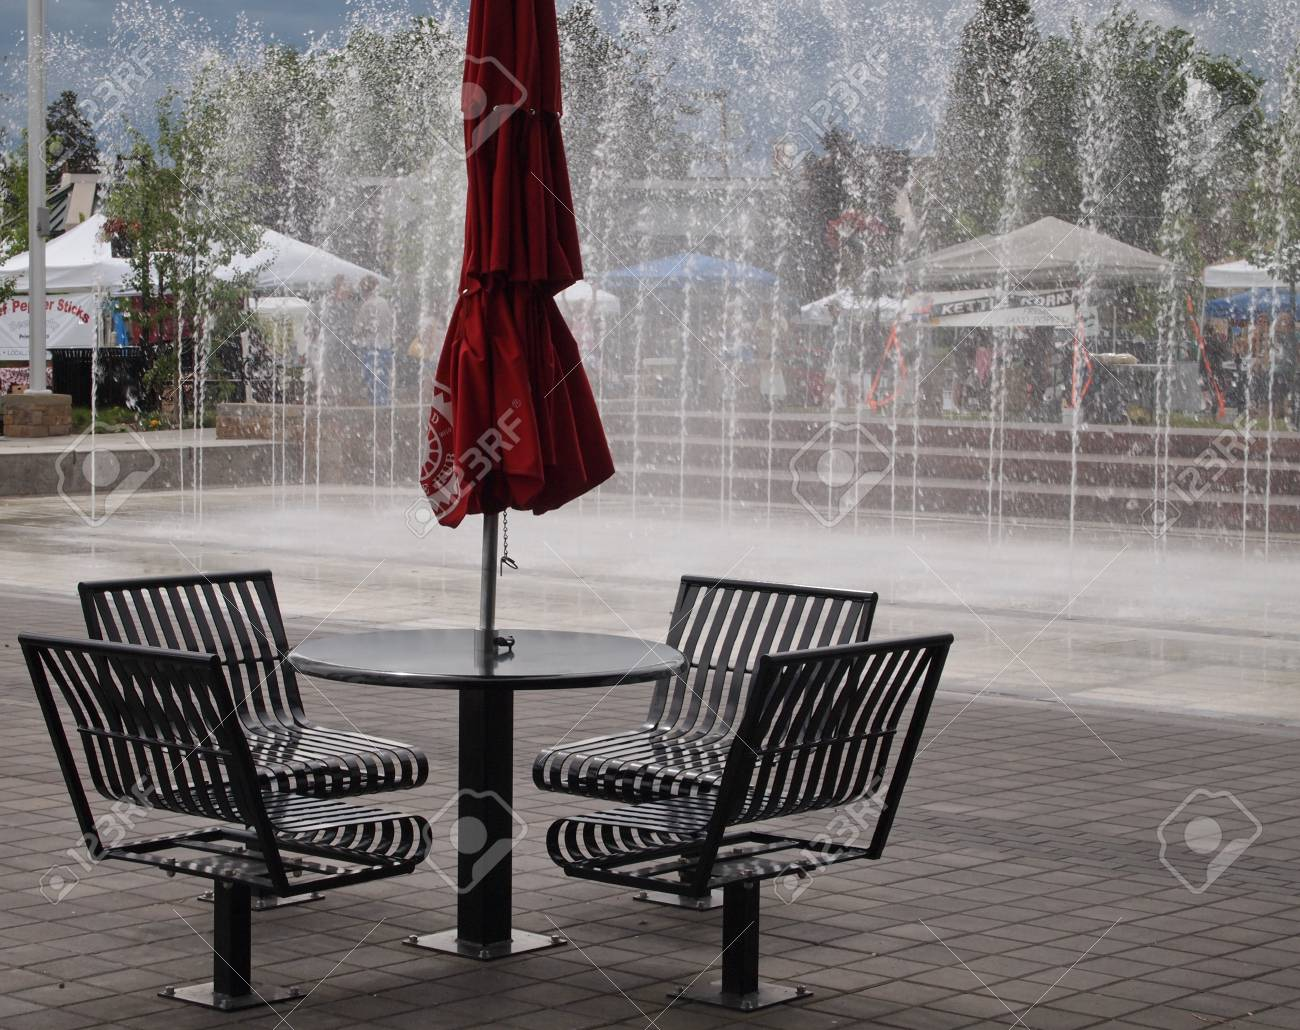 An Outdoor Cafe Style Table And Chairs With A Fountain In The - Outdoor cafe style table and chairs